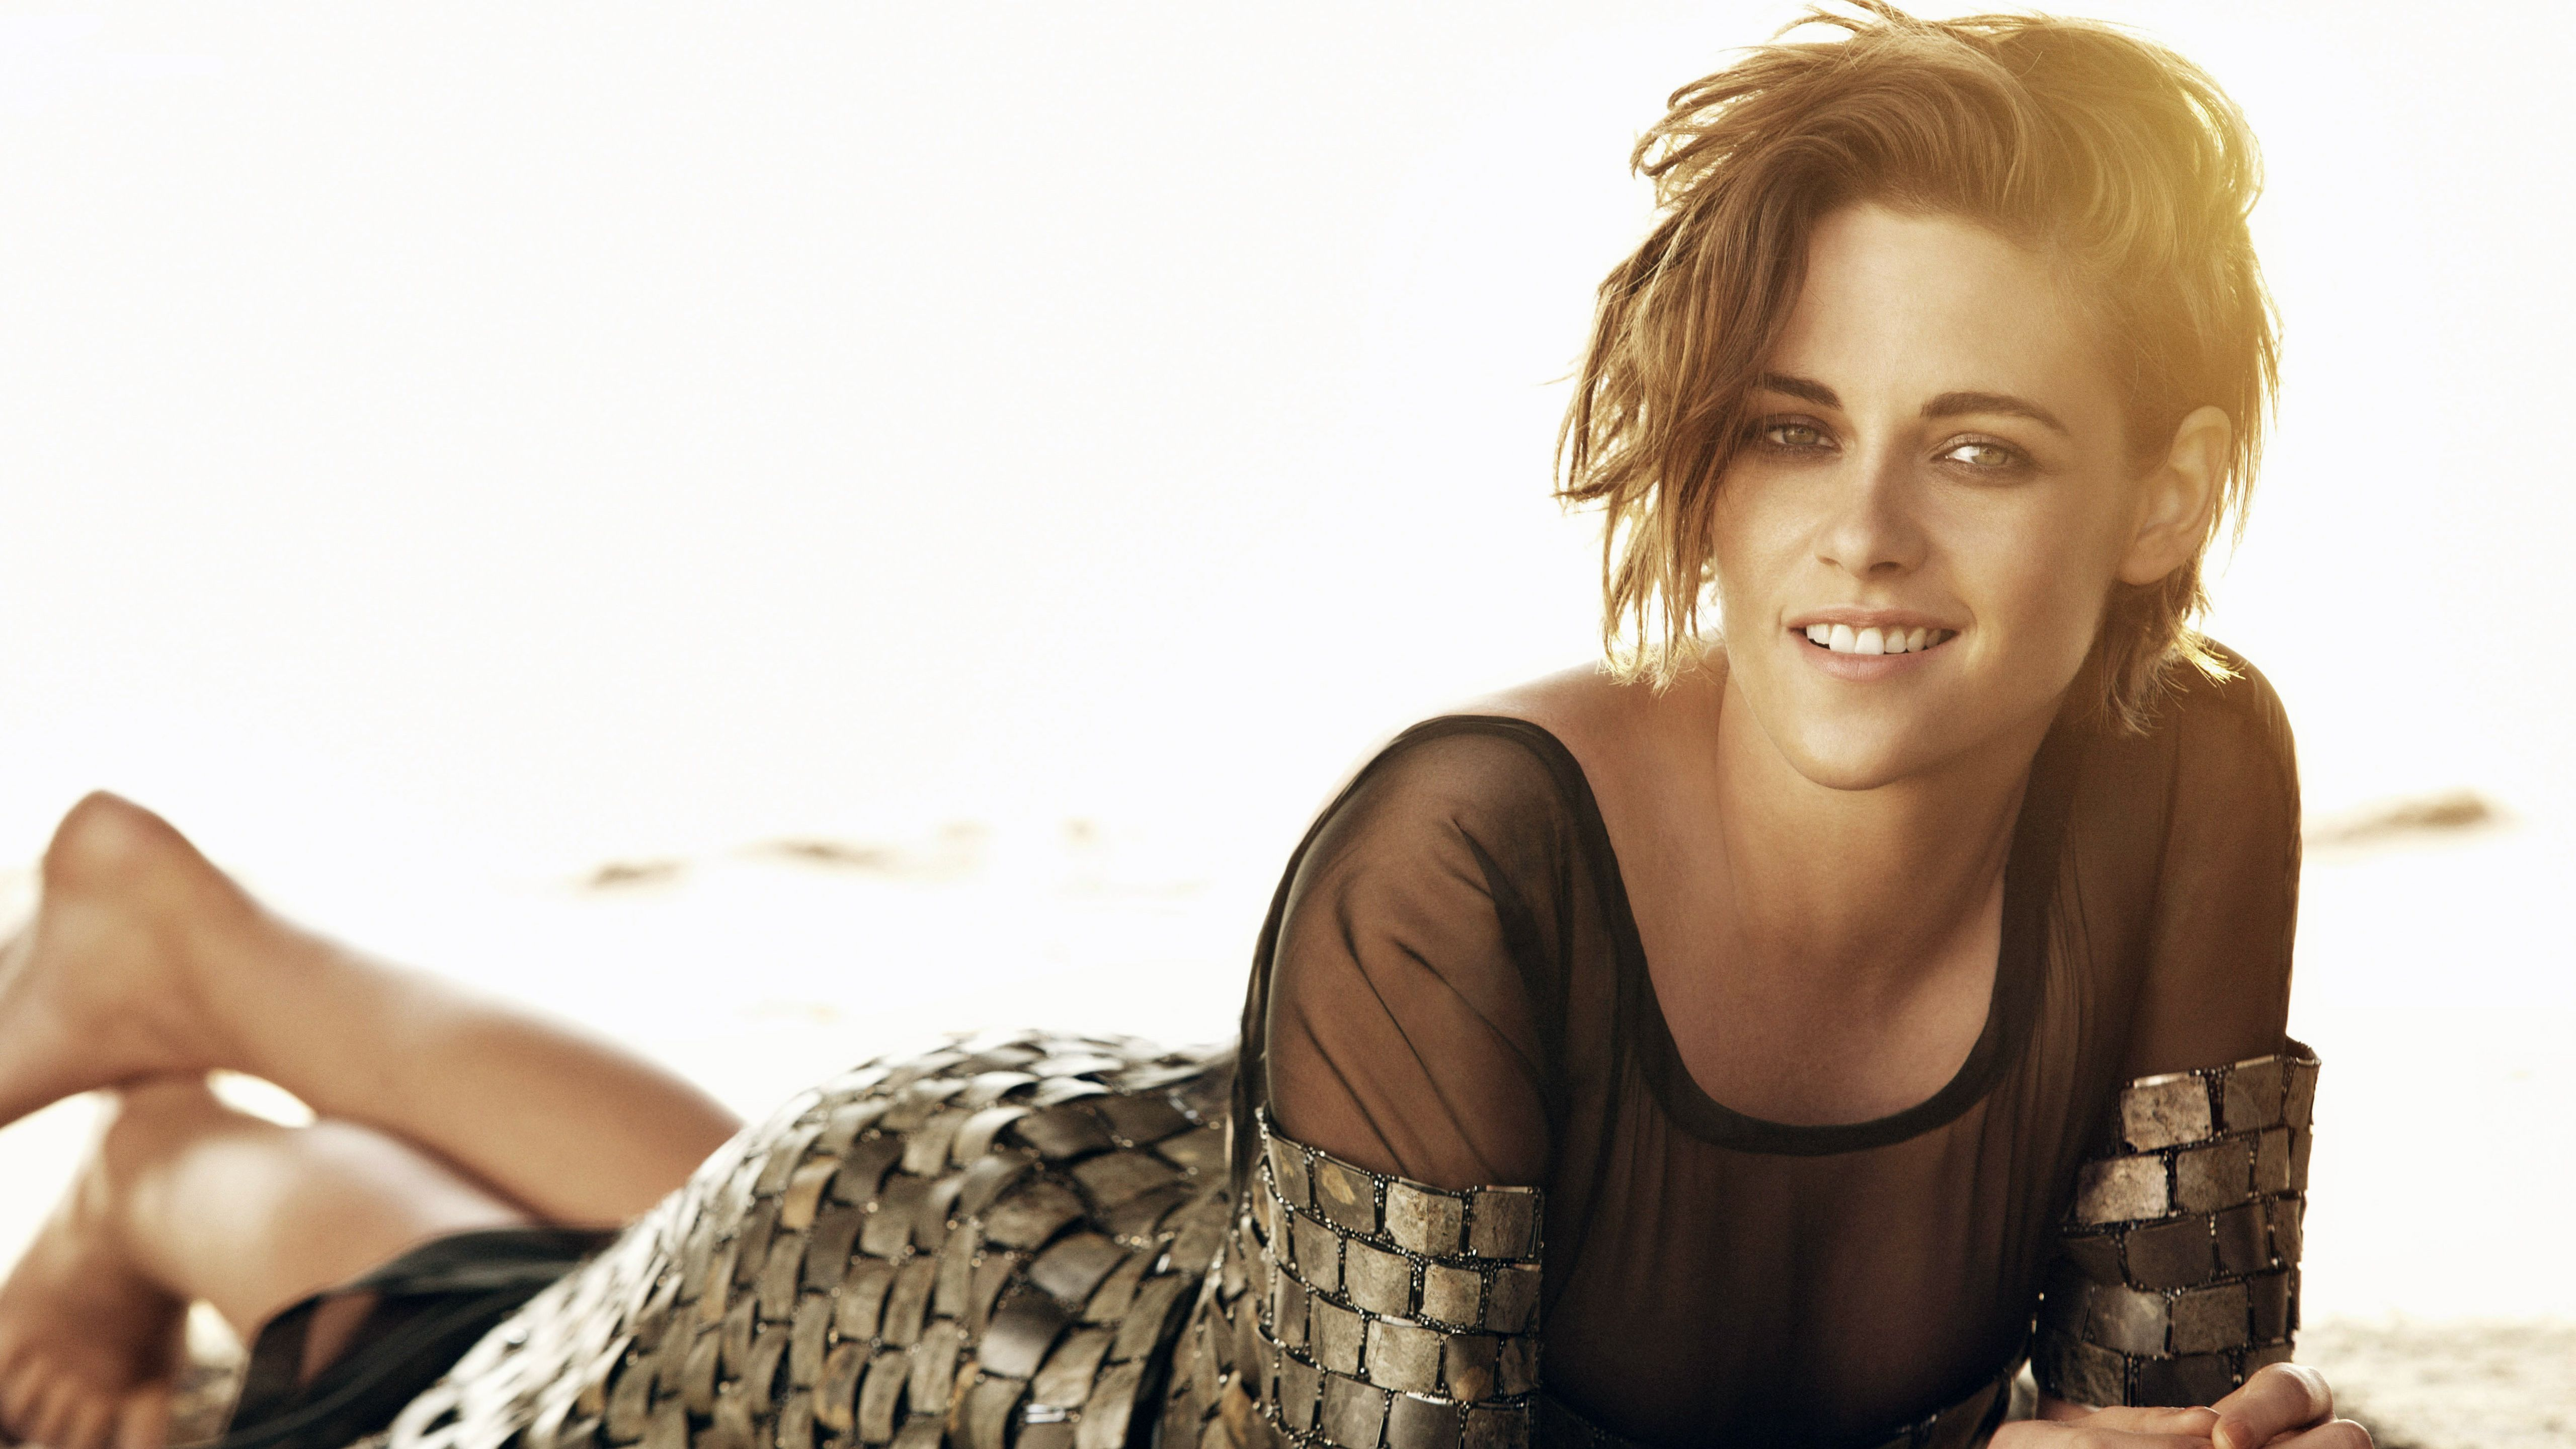 Kristen stewart iphone wallpaper tumblr - Endearing Kristen Stewart Wallpaper Hd Kristen Stewart Hd